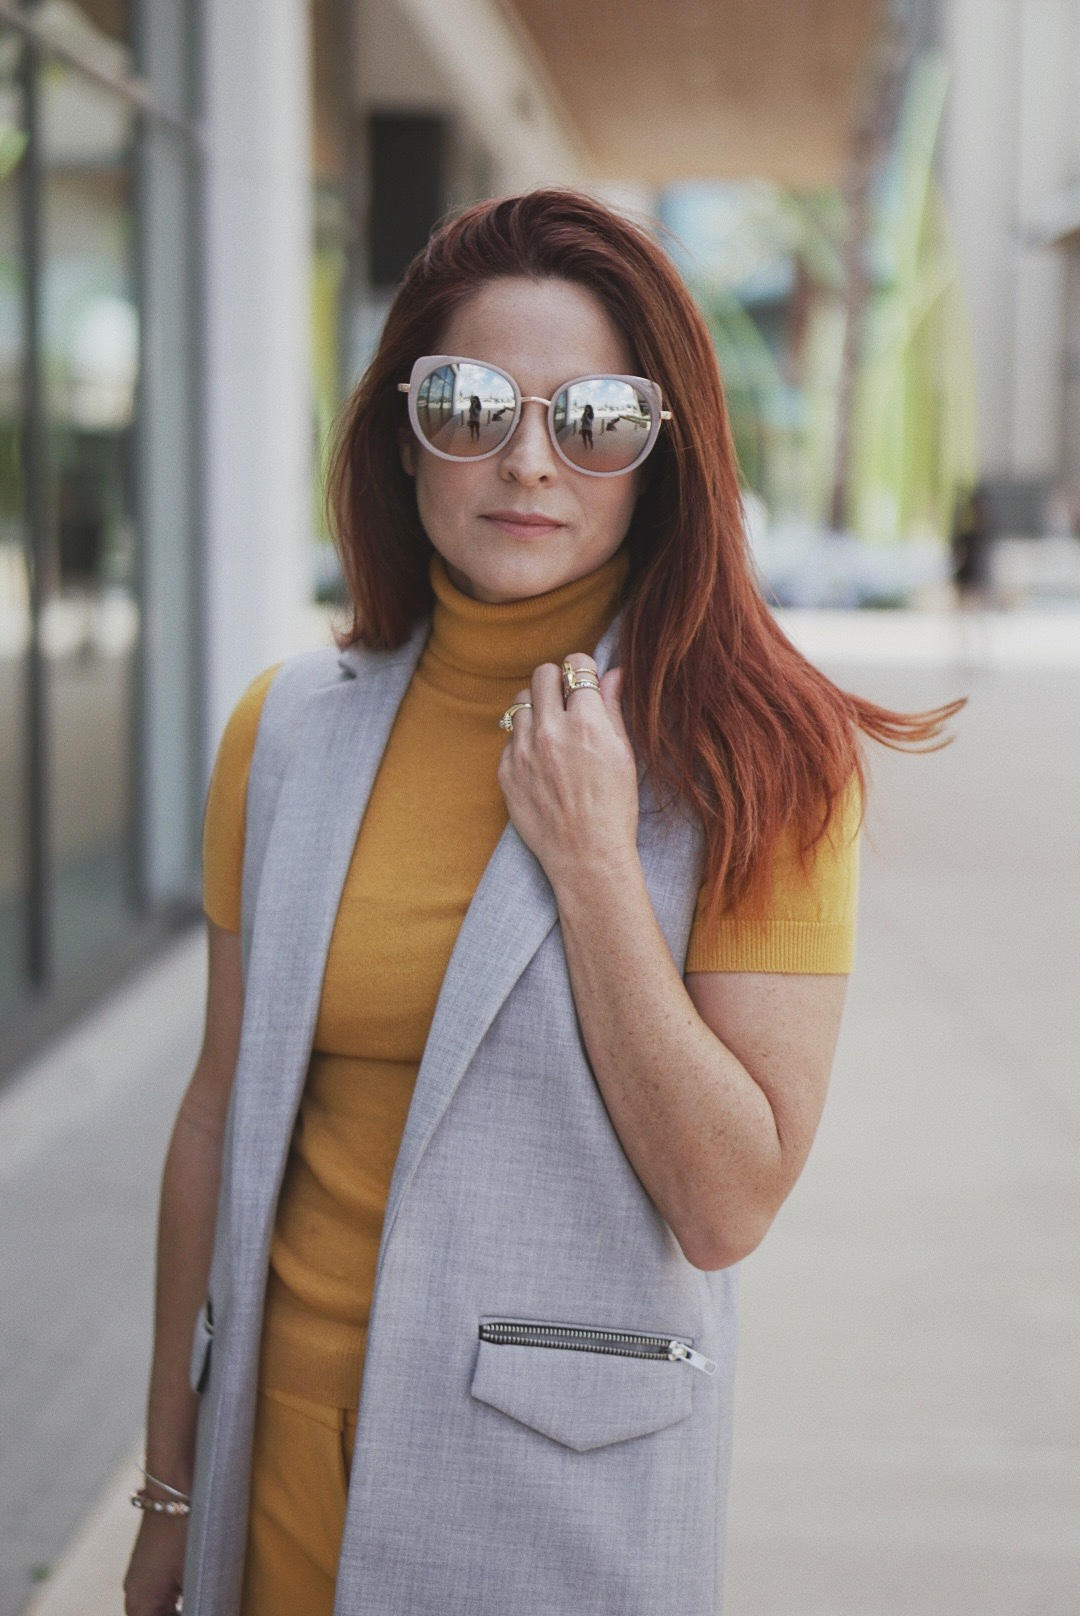 mustard yellow sweater outfits, red hair ideas, yellow turtlenecks,